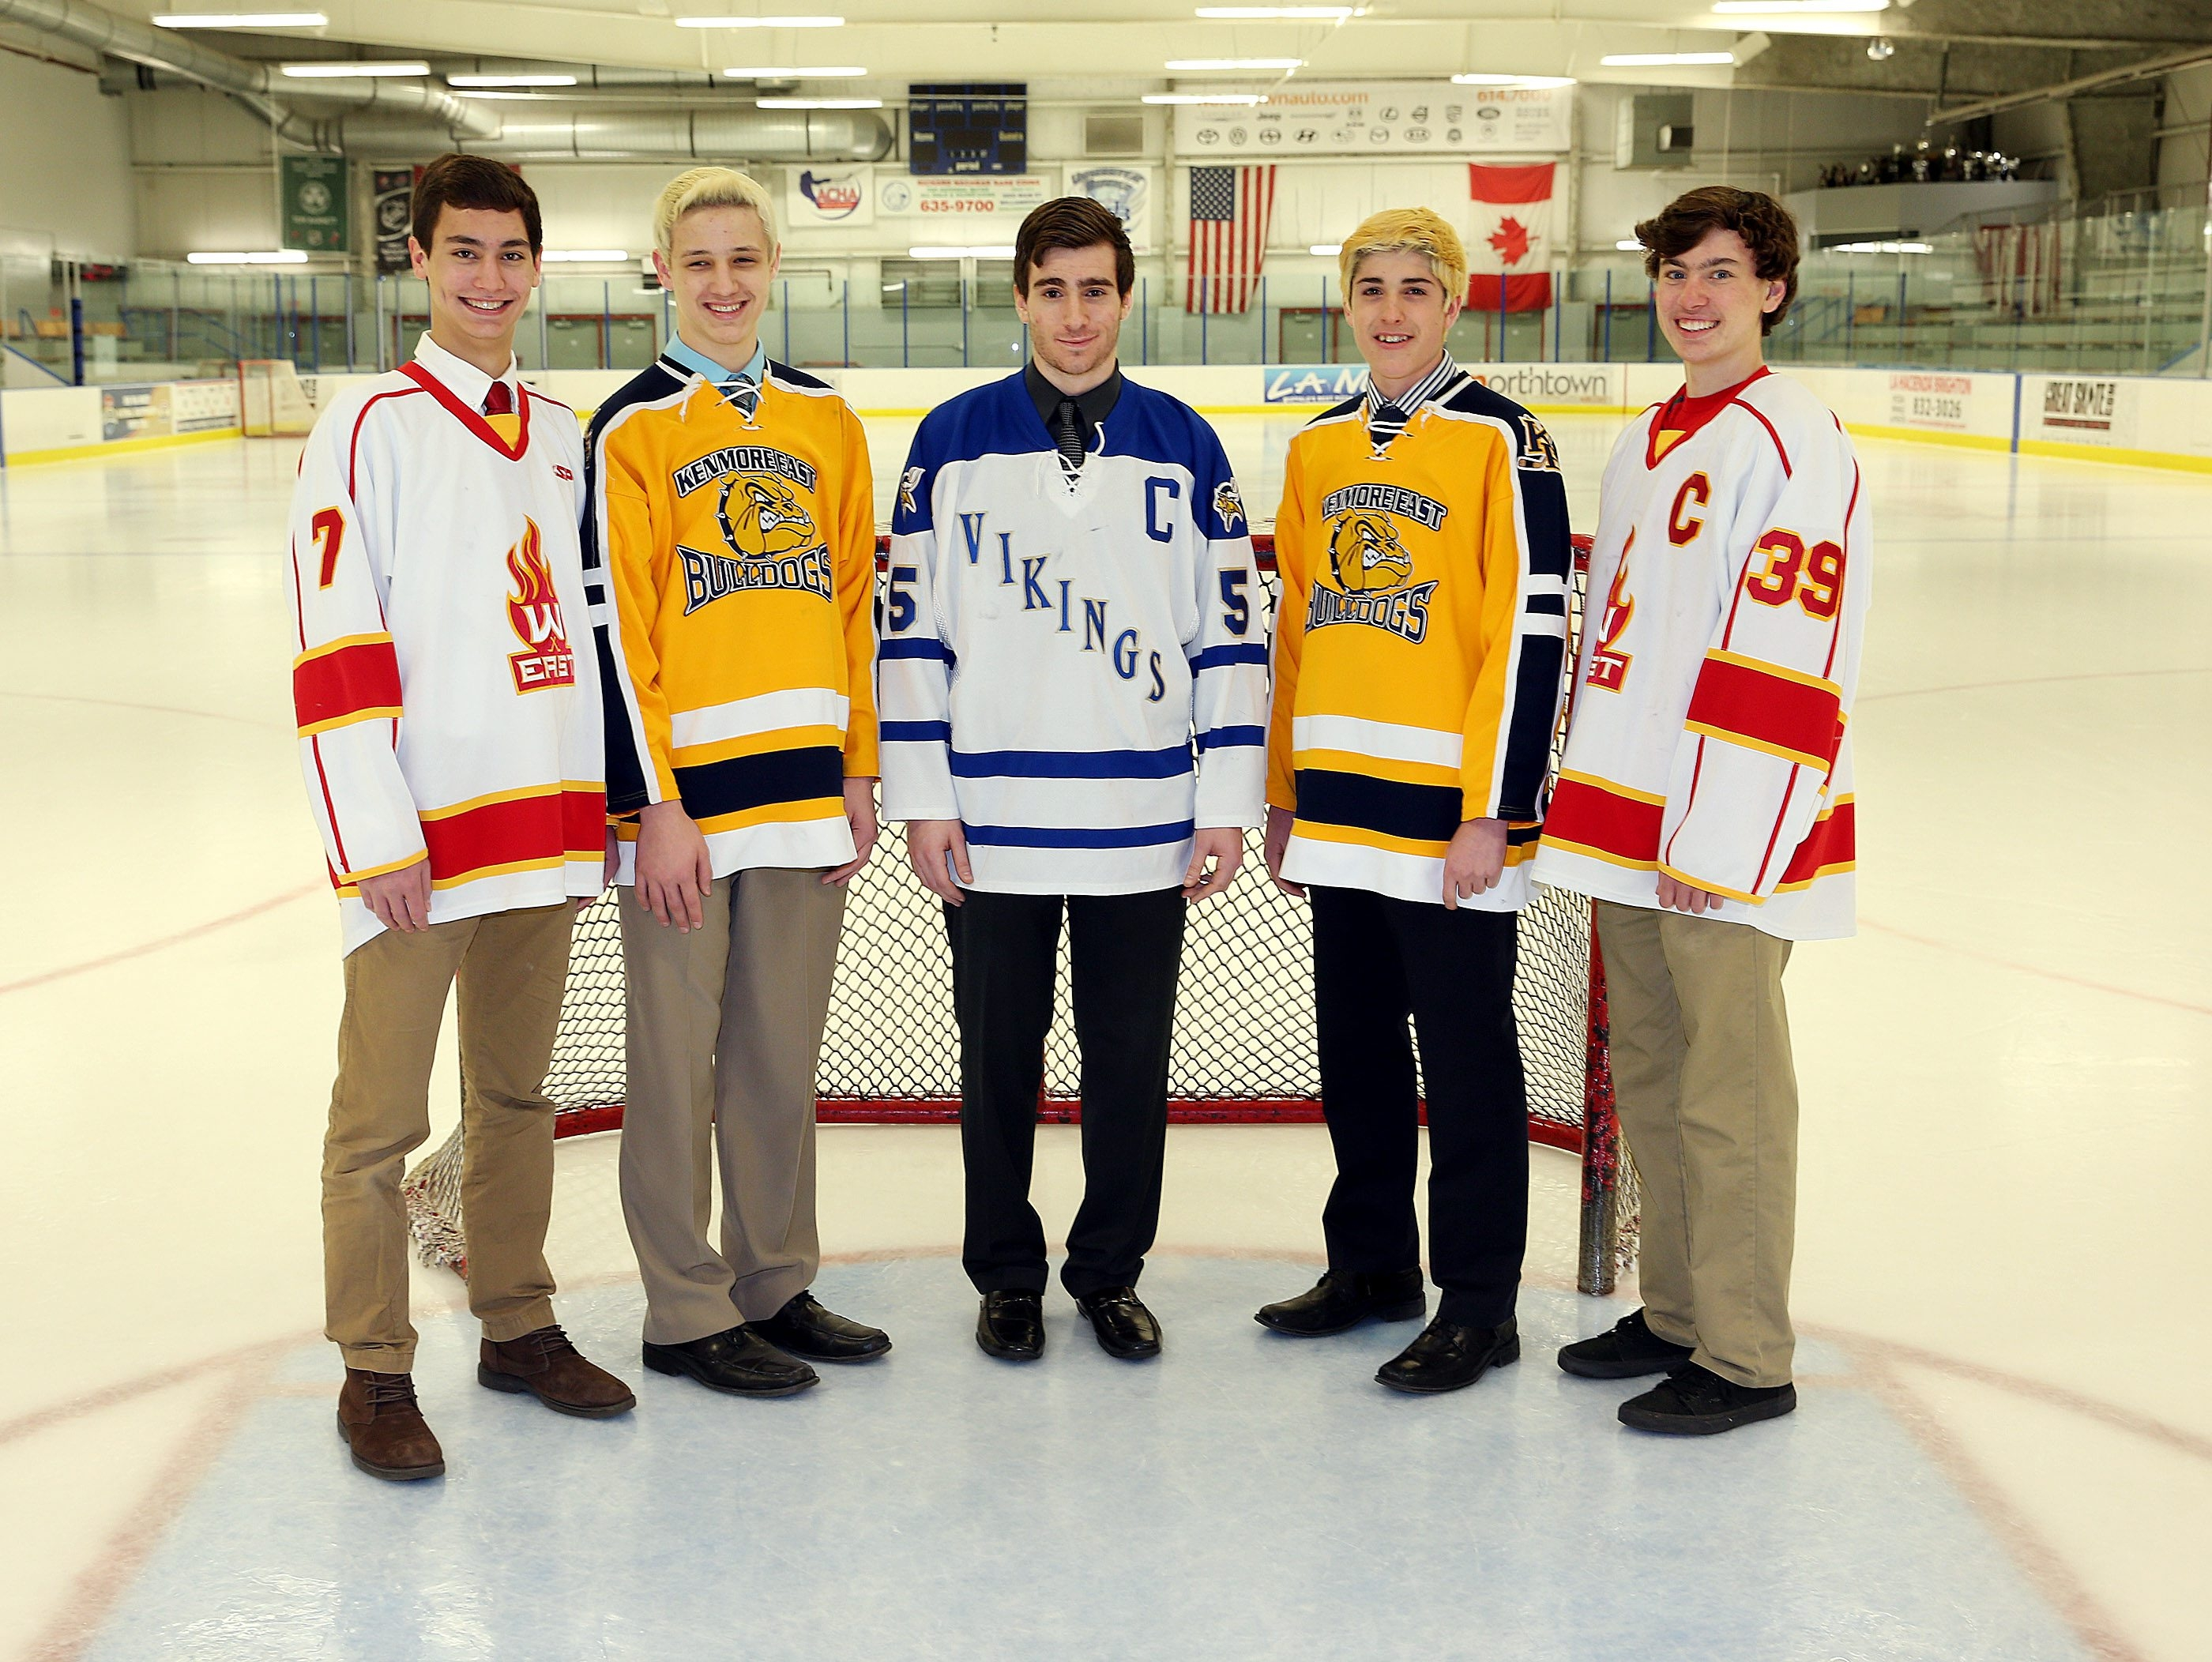 The All-Federation Small Schools team (left to right):  Mike Steffan, Williamsville East;  AJ Marinelli, Kenmore East; Mark McKenna, Grand Island; Joey Spataro, Kenmore East; Max Battistoni, Williamsville East. Not pictured: Tyler Scull, Hamburg.